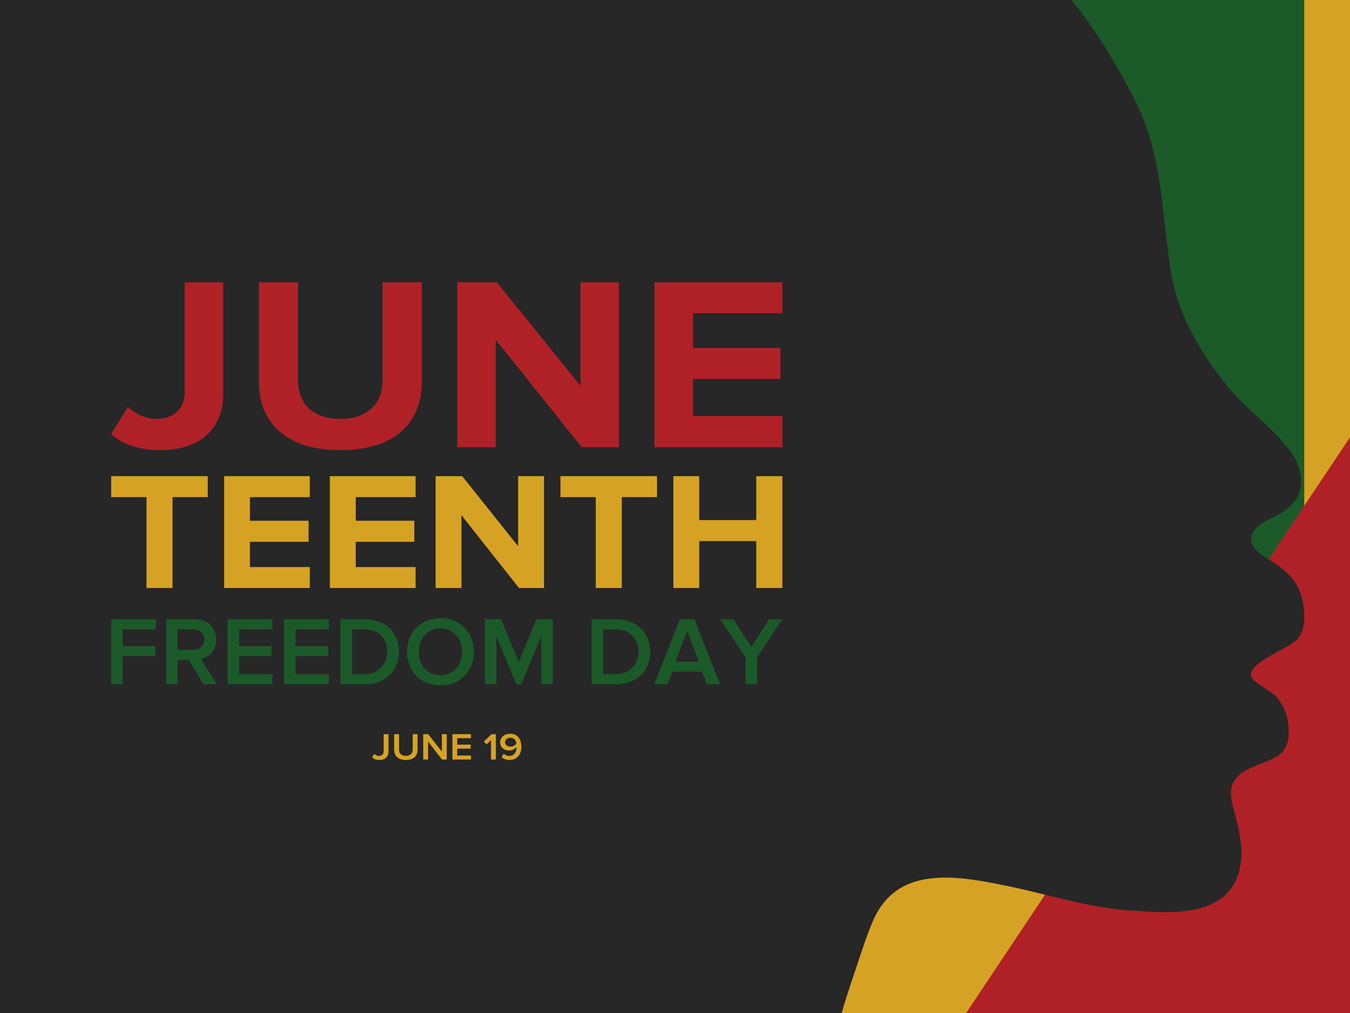 Juneteenth is today. What it means, why it matters, how to celebrate